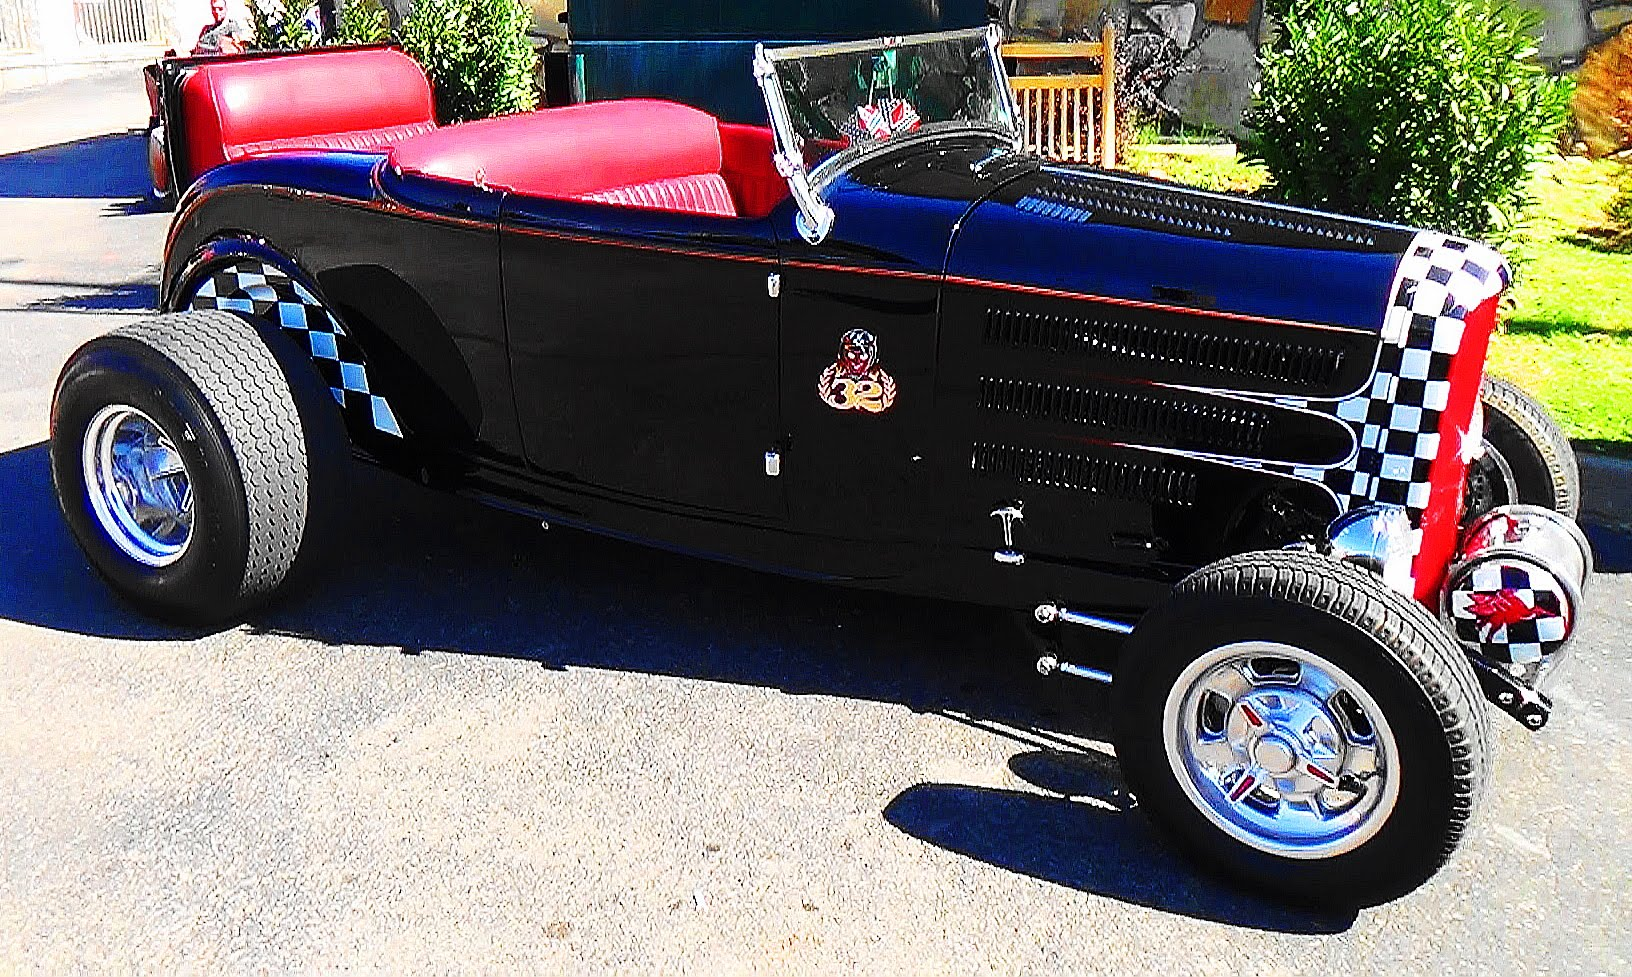 32 Ford Storage Wars Barry Weiss Edition Pigeon Forge Rod